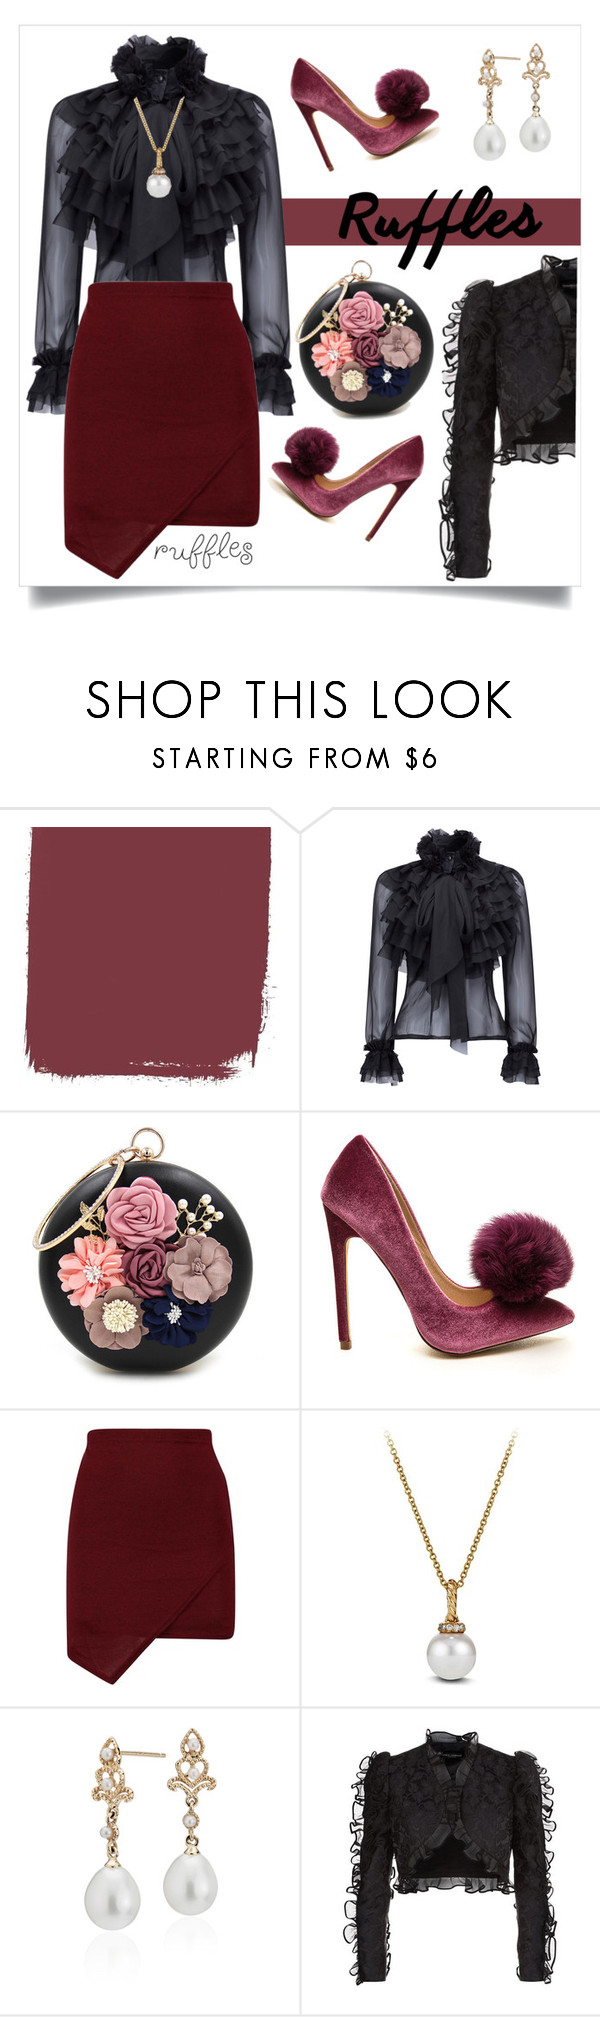 """""""#ruffles"""" by liligwada ❤ liked on Polyvore featuring WithChic, David Yurman, Blue Nile and Dolce&Gabbana"""